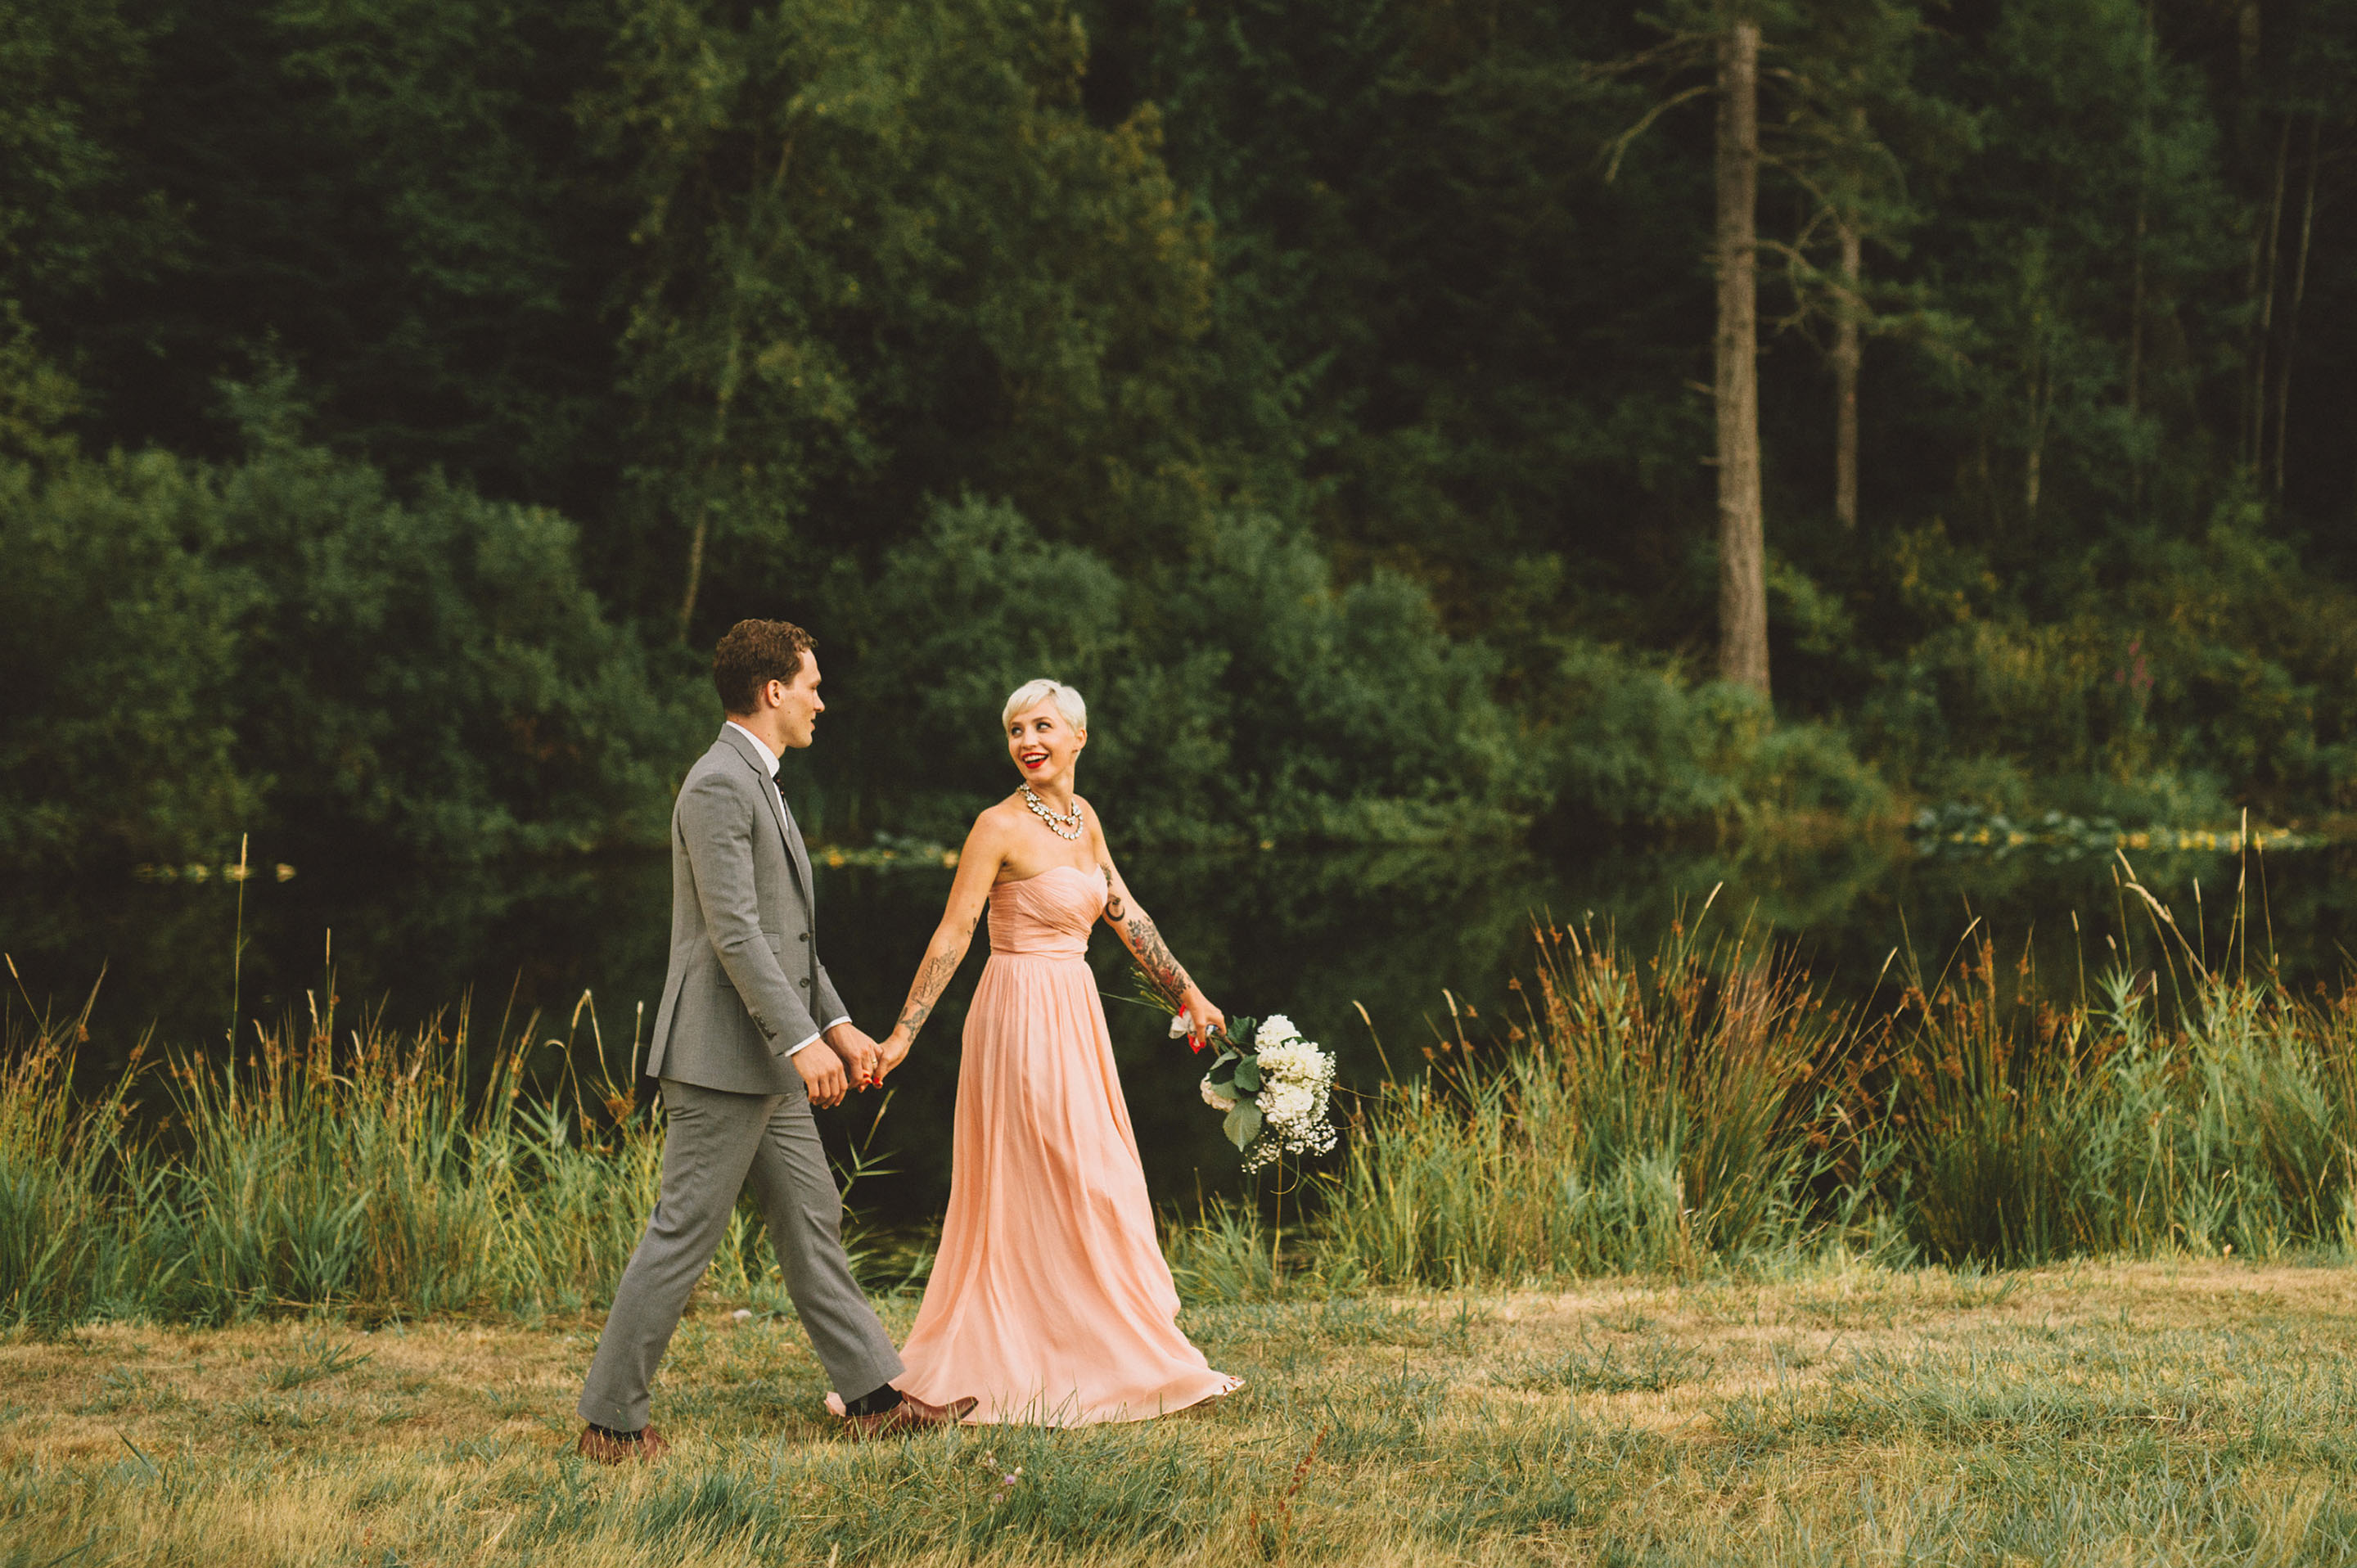 Portland Wedding Photographer | Megan and Max on Orcas Island